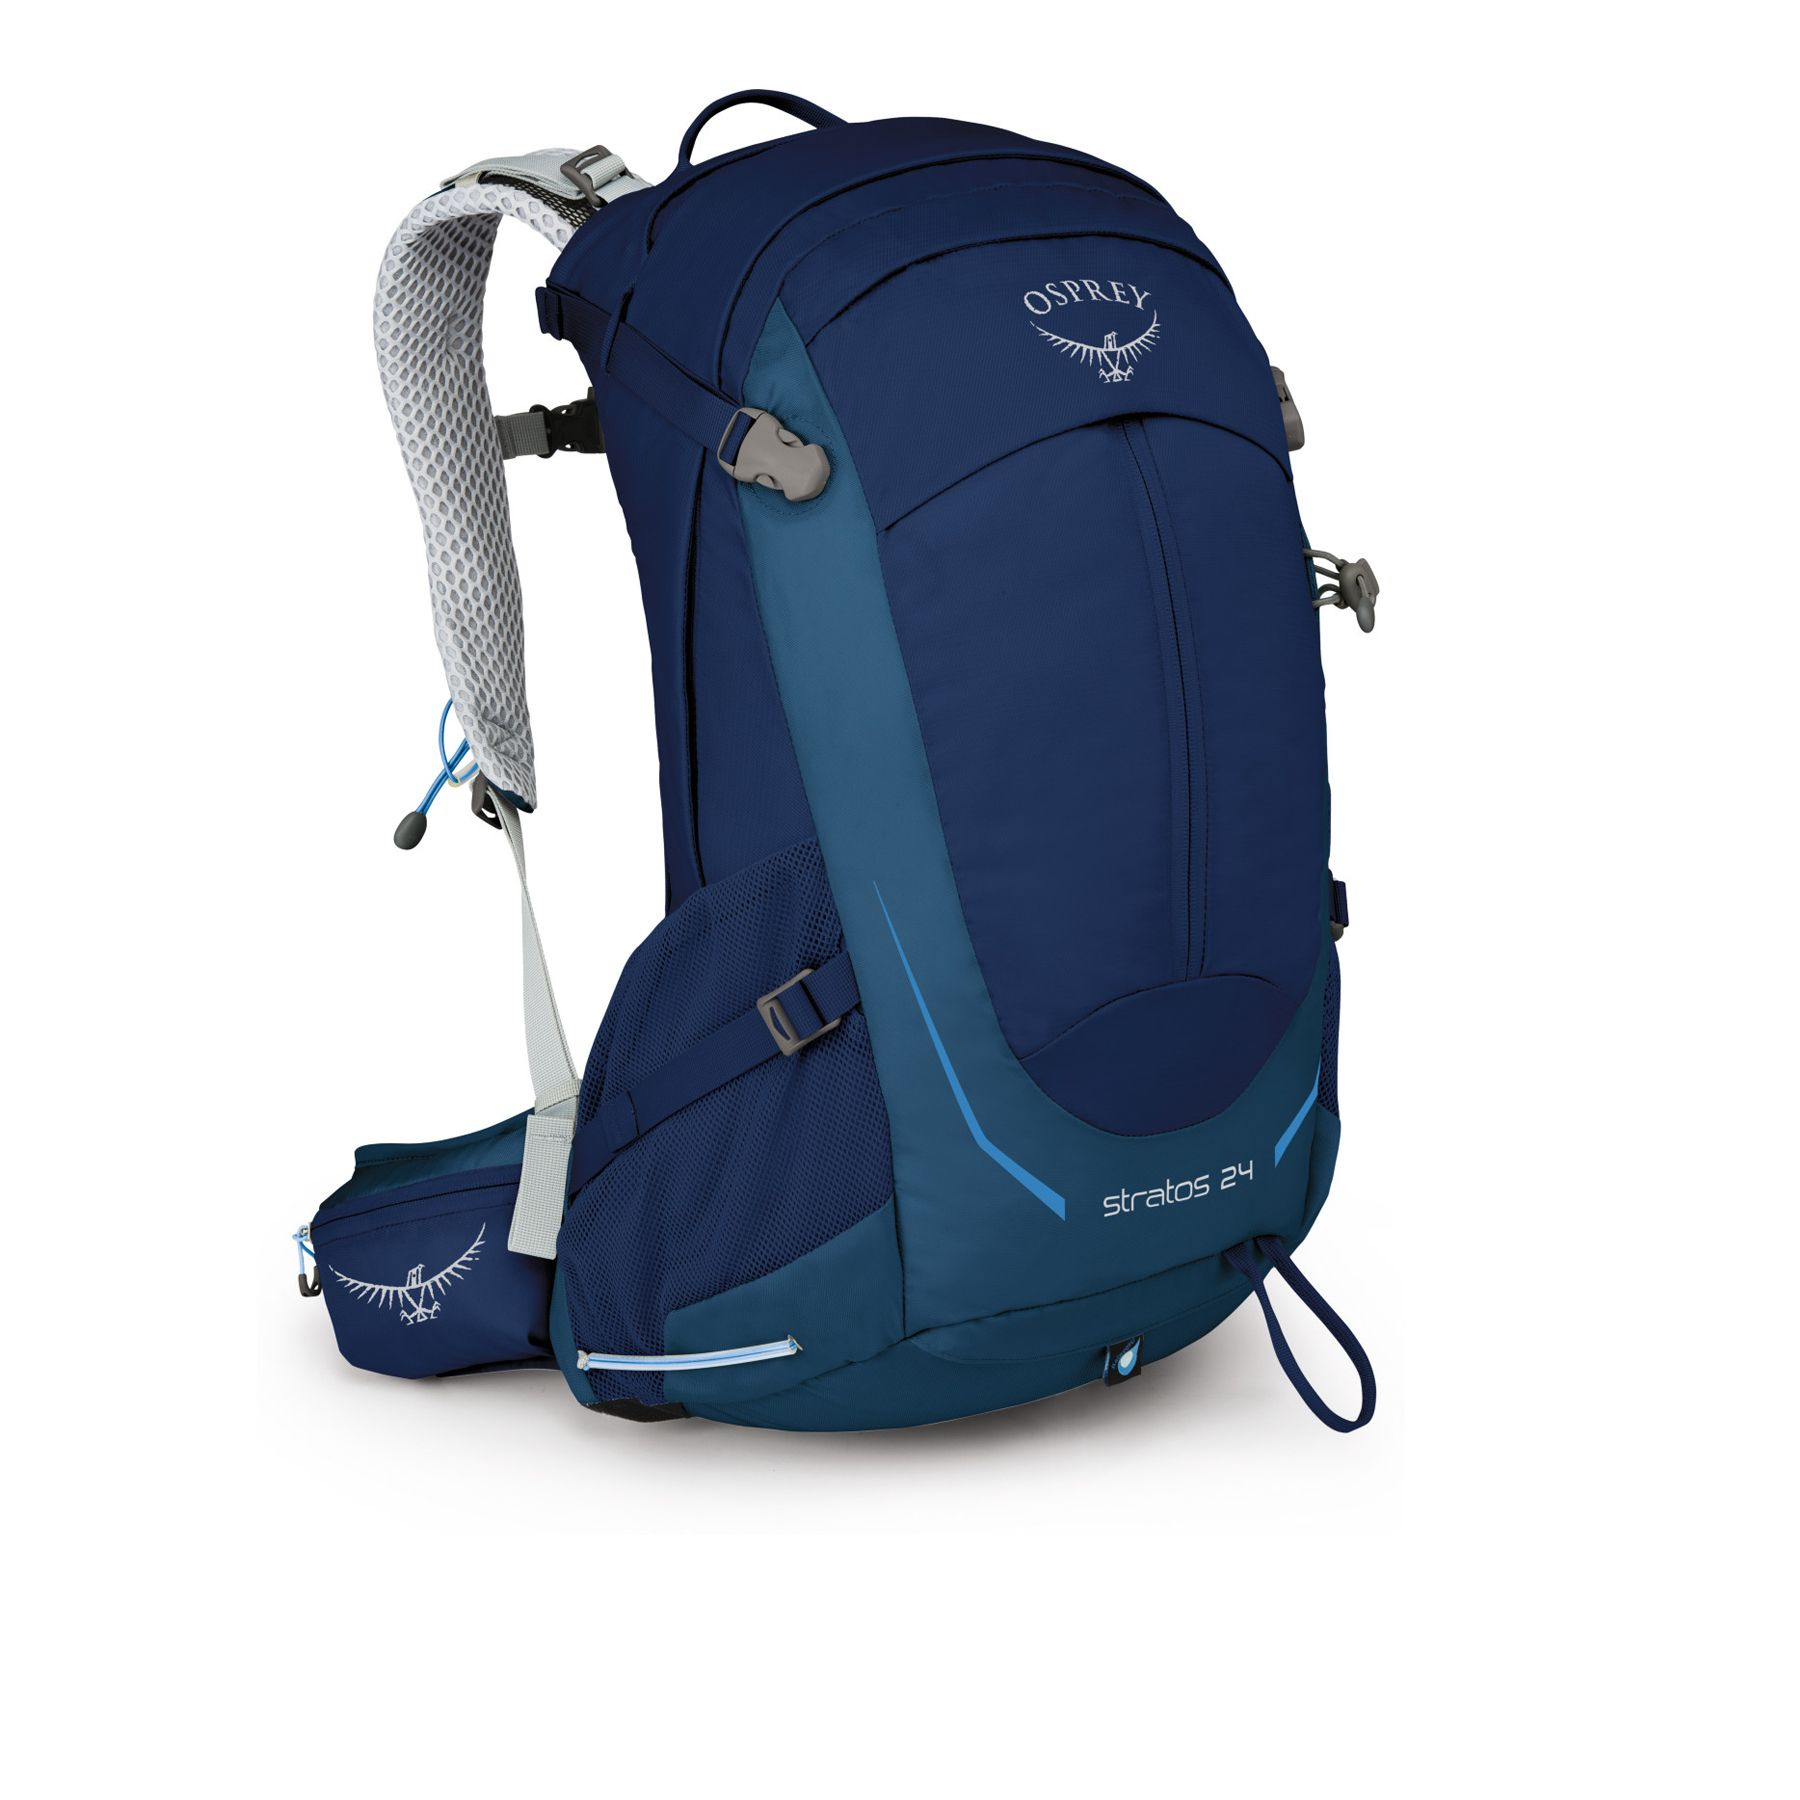 Photo of Osprey Stratos 24 Hiking Backpack – On Sale $85.69